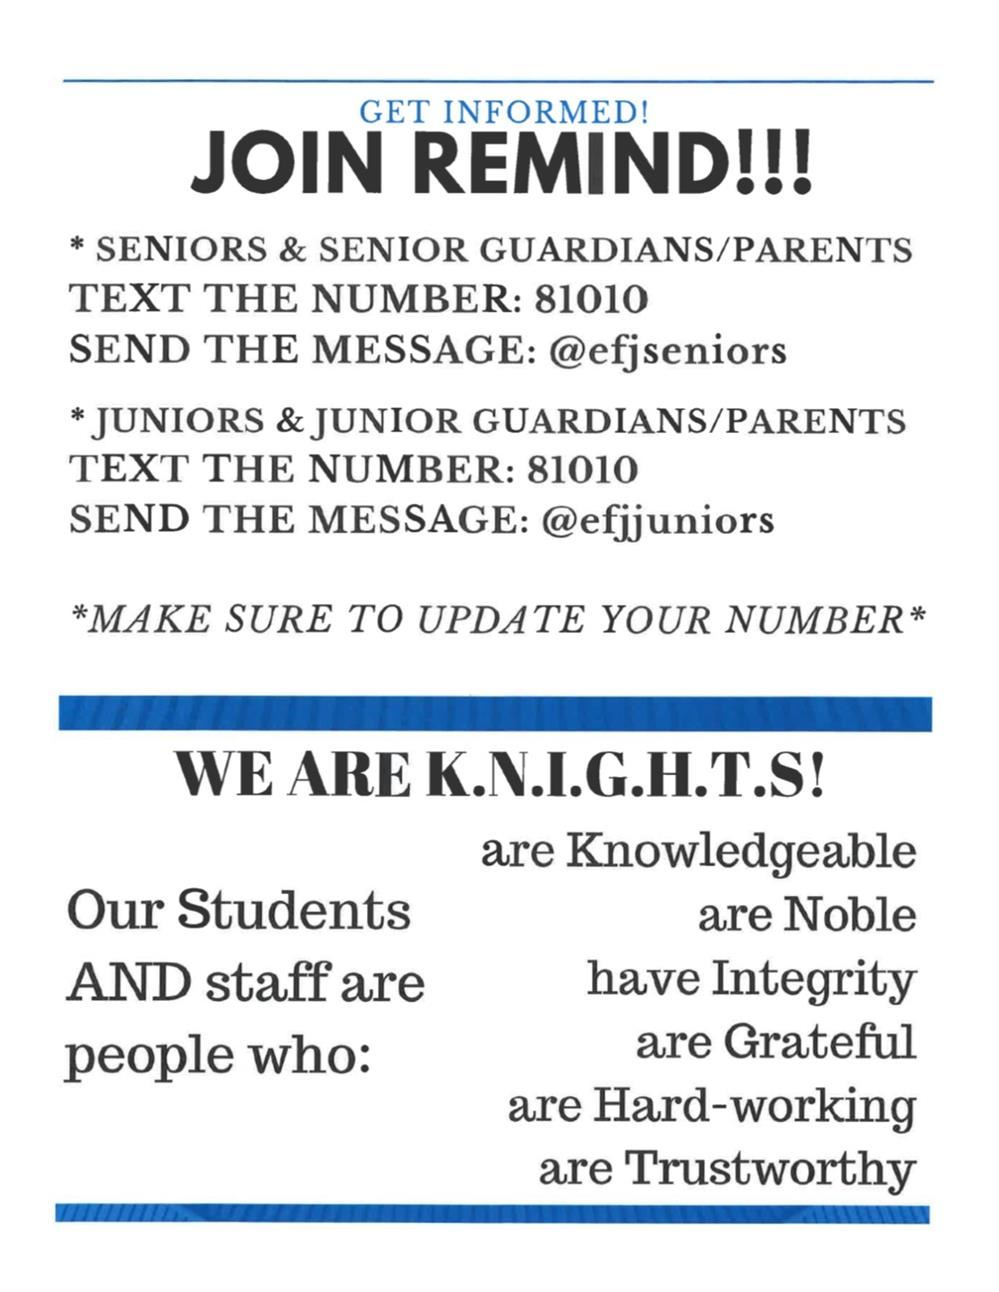 Join Remind by Texting 81010 the message @earlfj OR @efjjuniors OR @efjseniors. Bottom half of picture: WE ARE KNIGHTS